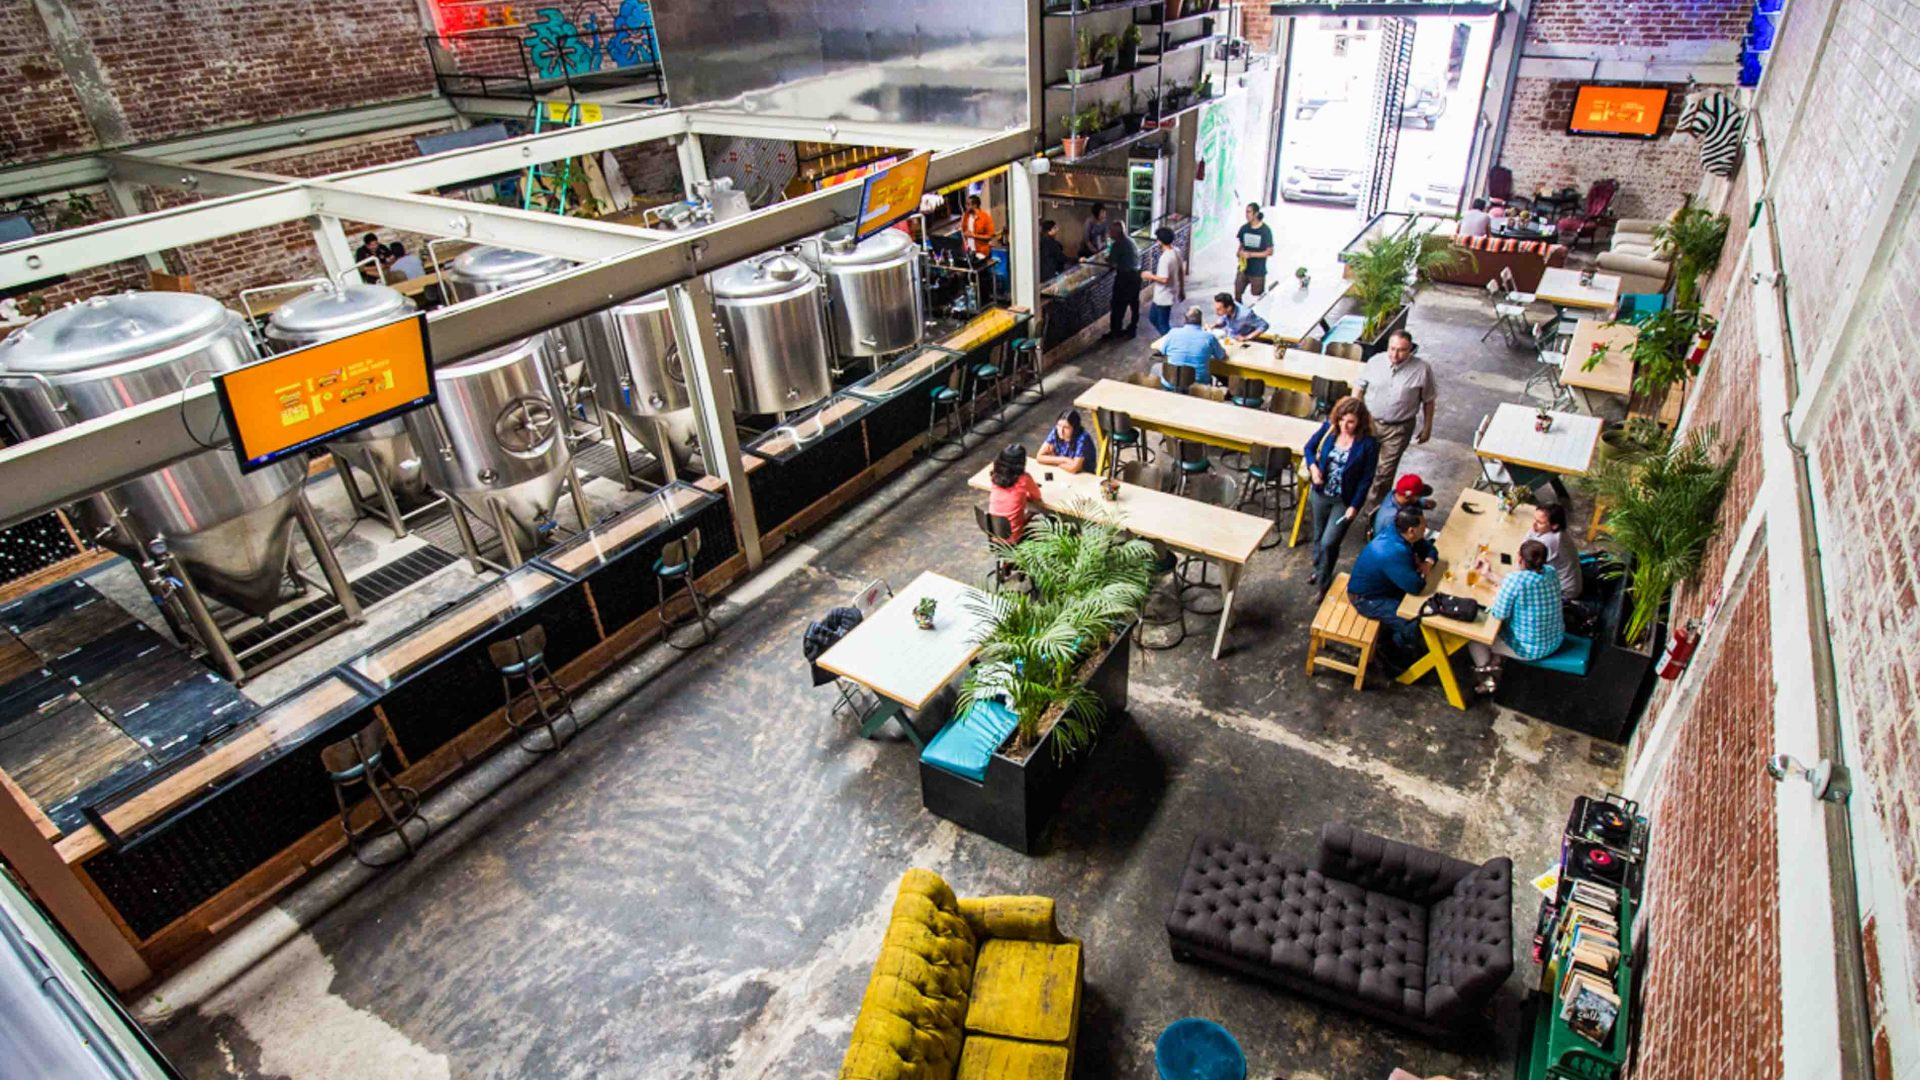 Telefonica Gastro Park, a revamped food truck park with its own on-site craft brewery.